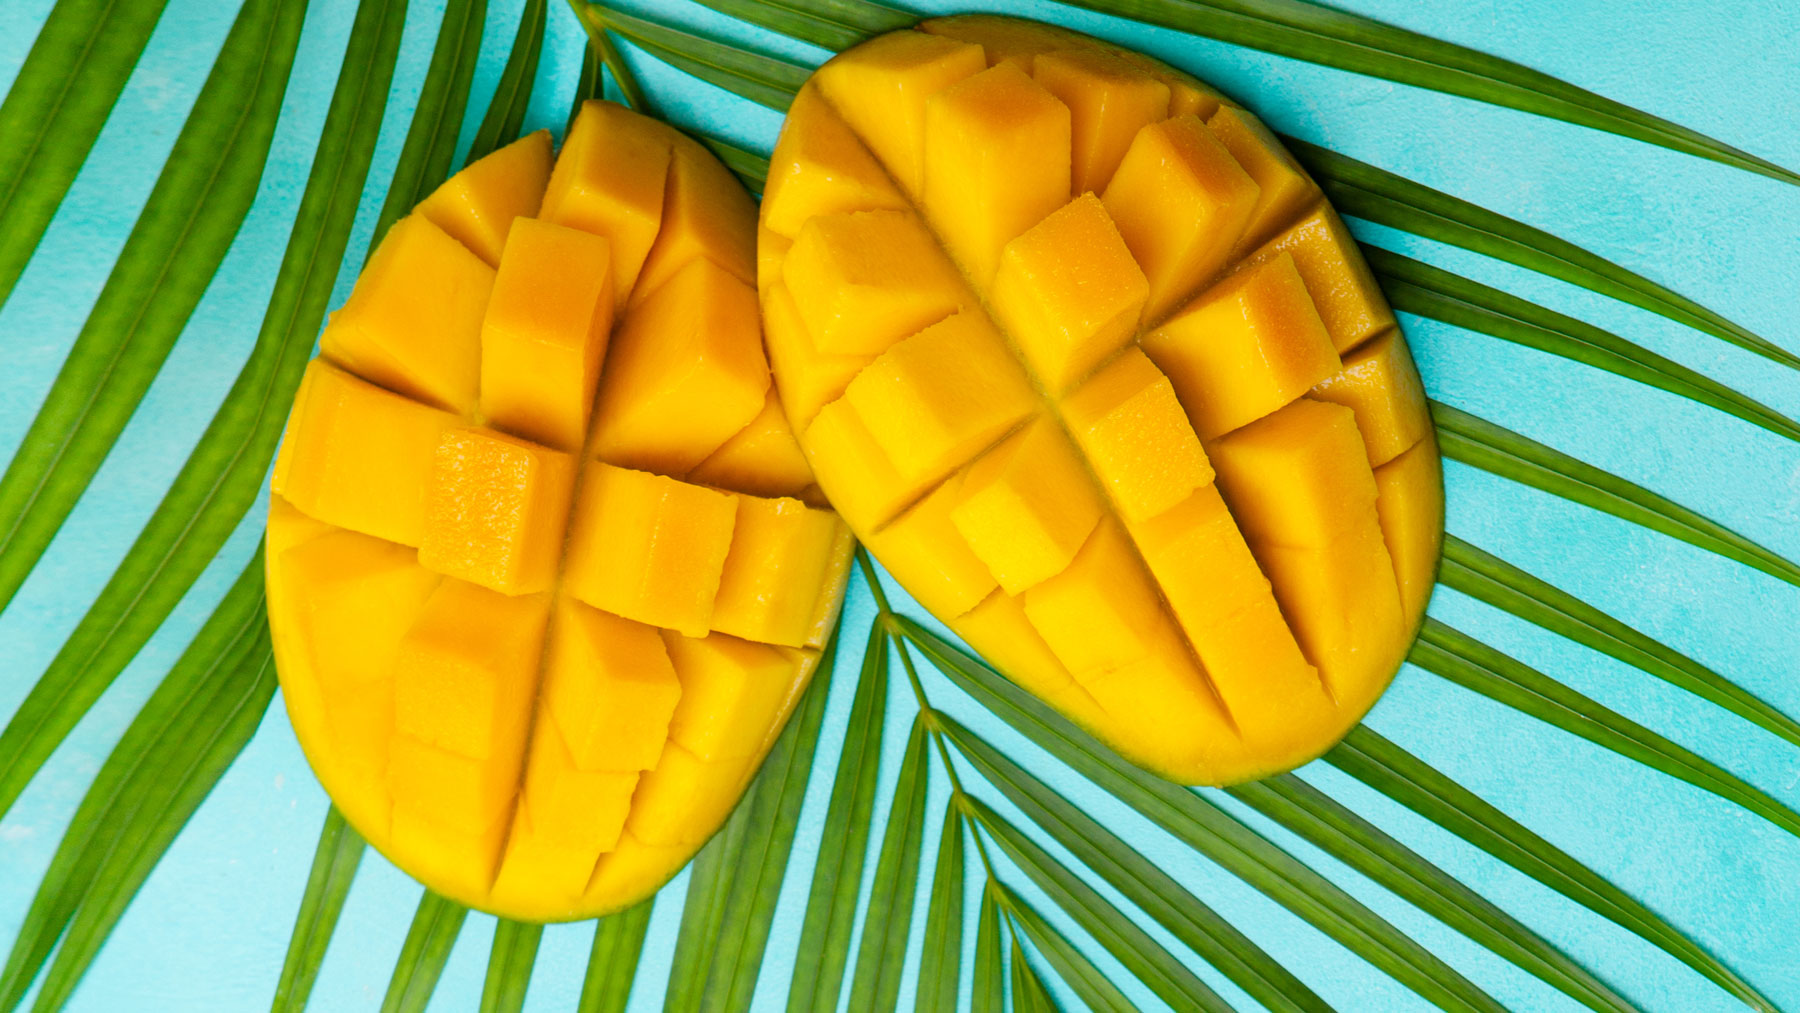 How to cut a mango: Steps and video to cut, slice, and peel a mango